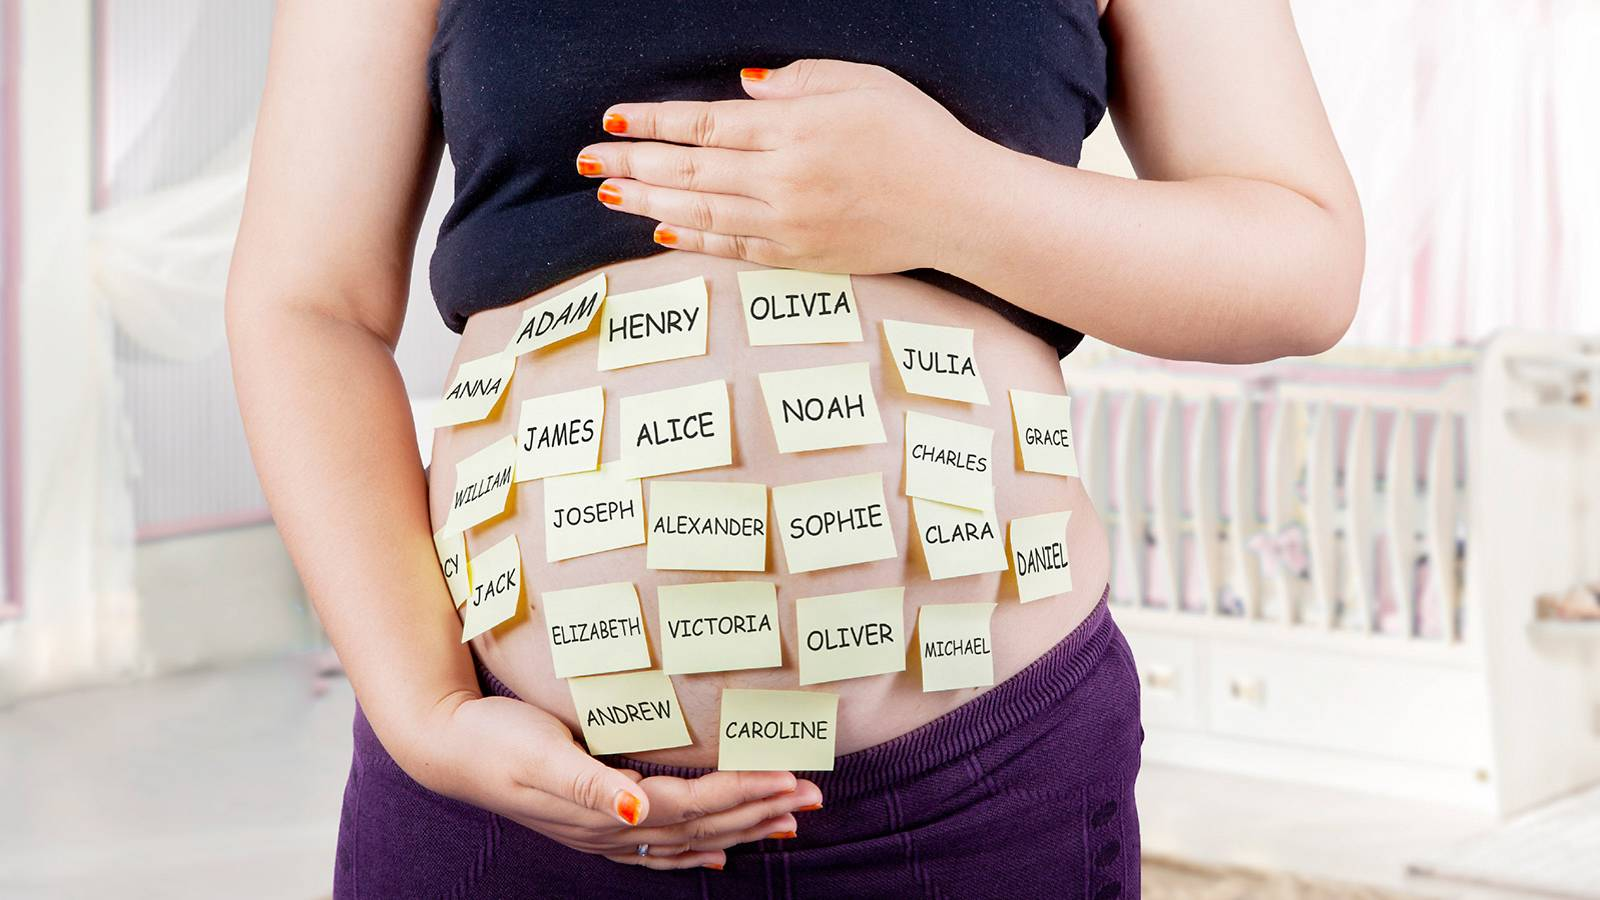 Pregnancy-What-does-your-baby's-name-say-about-you-2